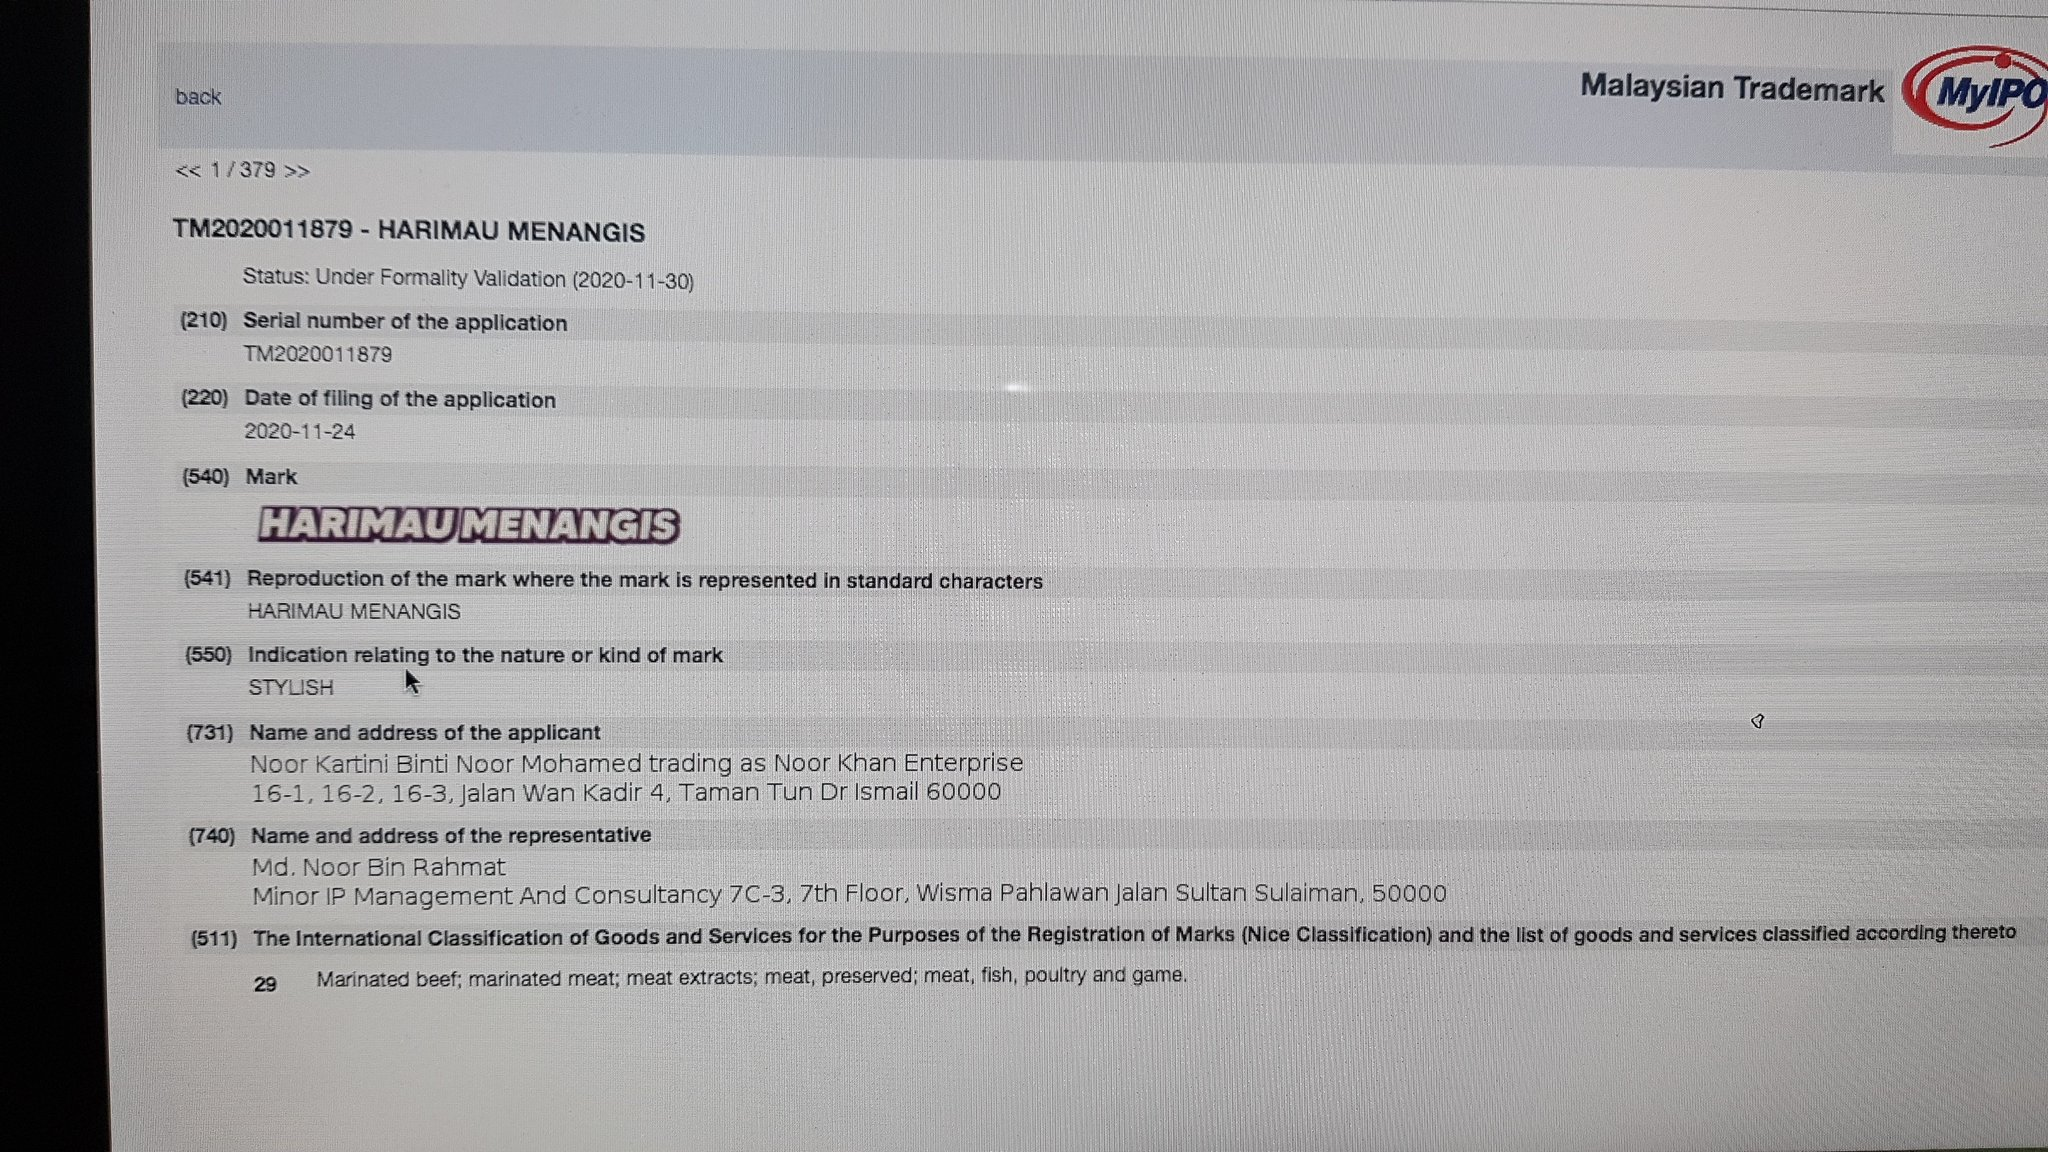 Screenshot of the application sent in by Noor Kartini.